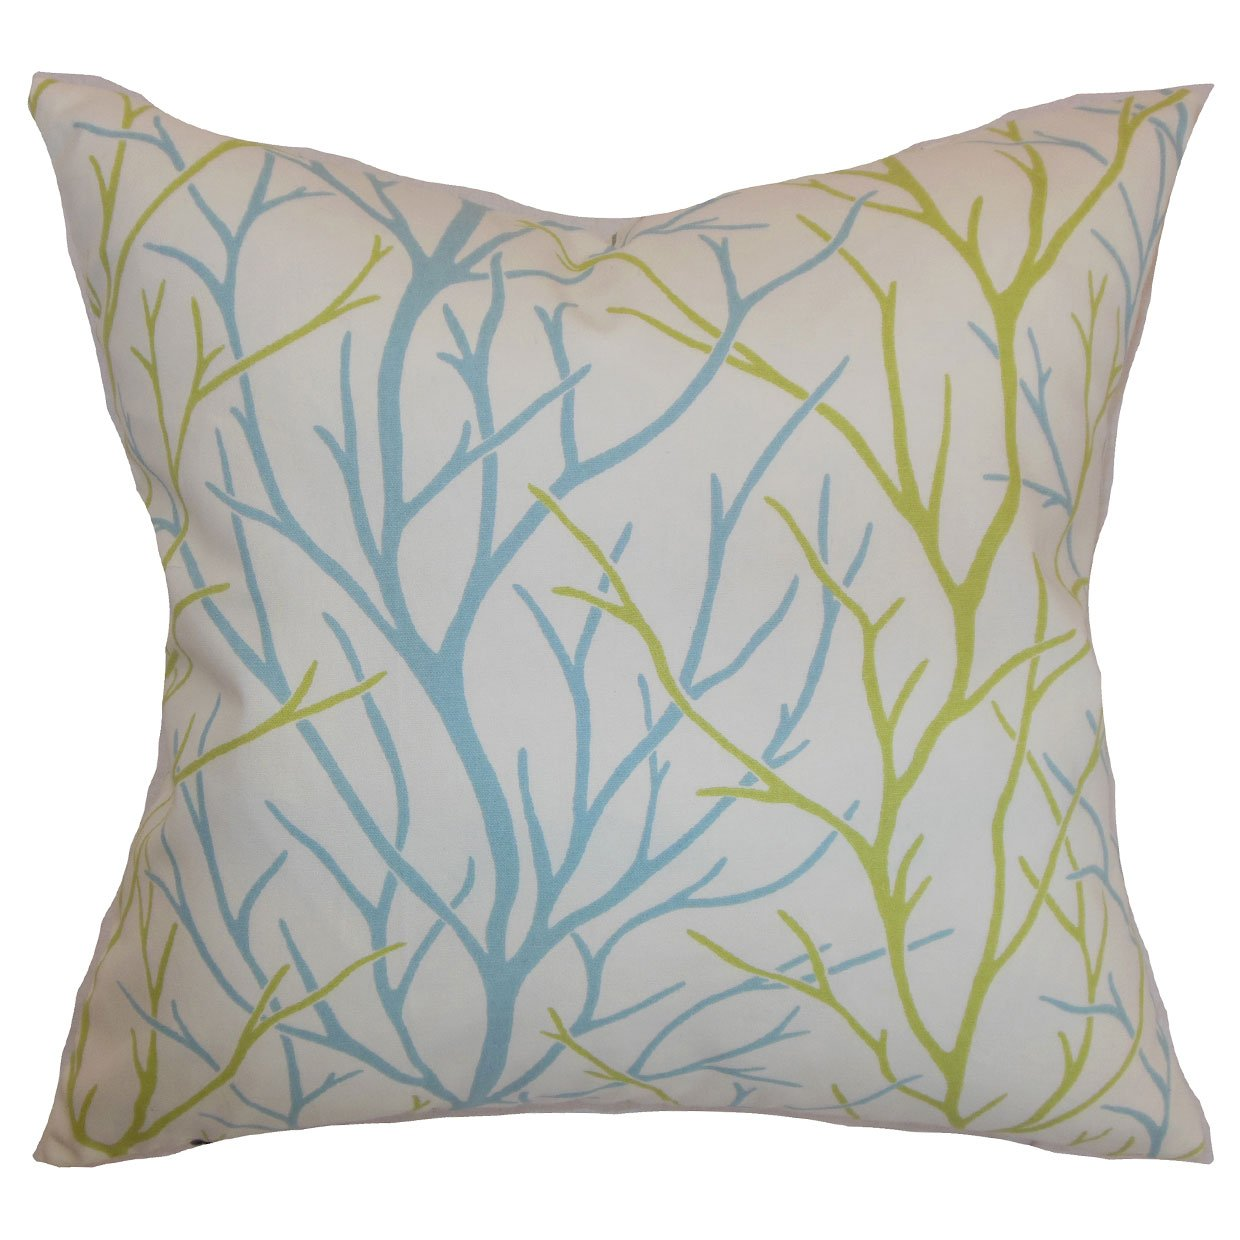 P18-D-21043-AQUAGREEN-C100 Home The Pillow Collection Fderik Trees Pillow Aqua Green The Pillow Collection Inc.